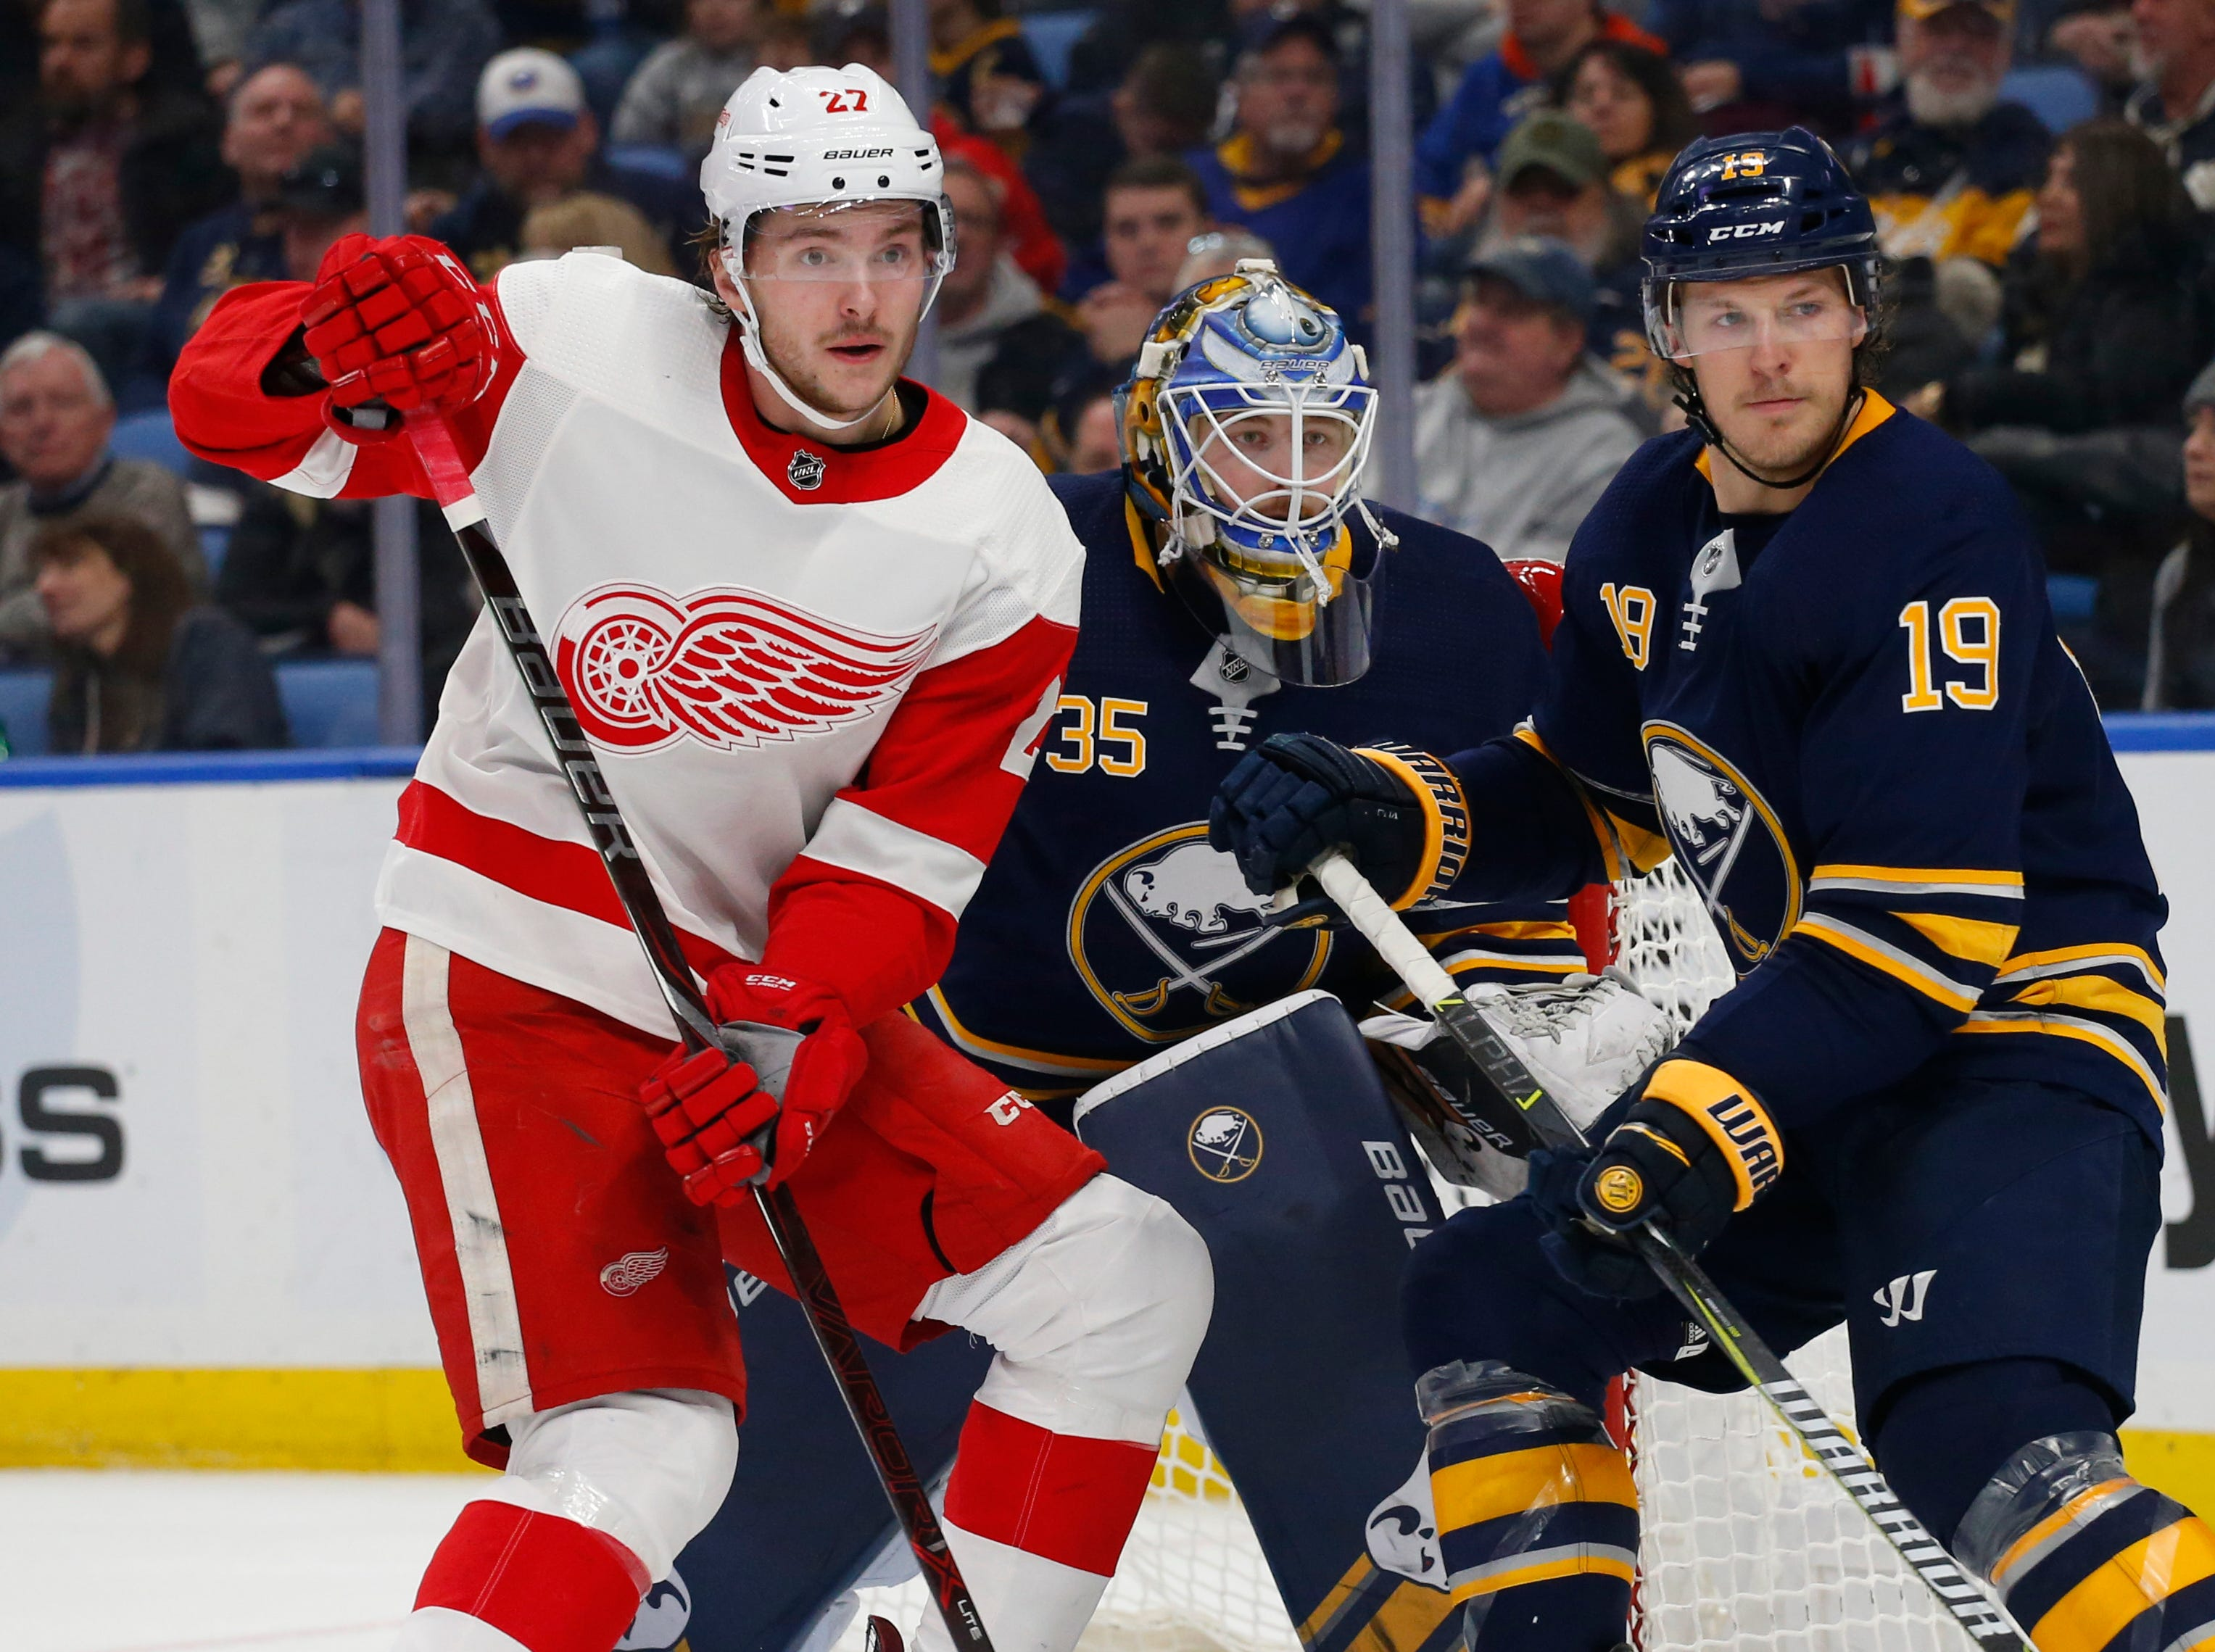 Buffalo Sabres defenseman Jake McCabe (19) and Detroit Red Wings forward Michael Rasmussen (27) battle for position in front of Buffalo Sabres goalie Linus Ullmark (35) during the second period of an NHL hockey game, Saturday, Feb. 9, 2019, in Buffalo N.Y. (AP Photo/Jeffrey T. Barnes)